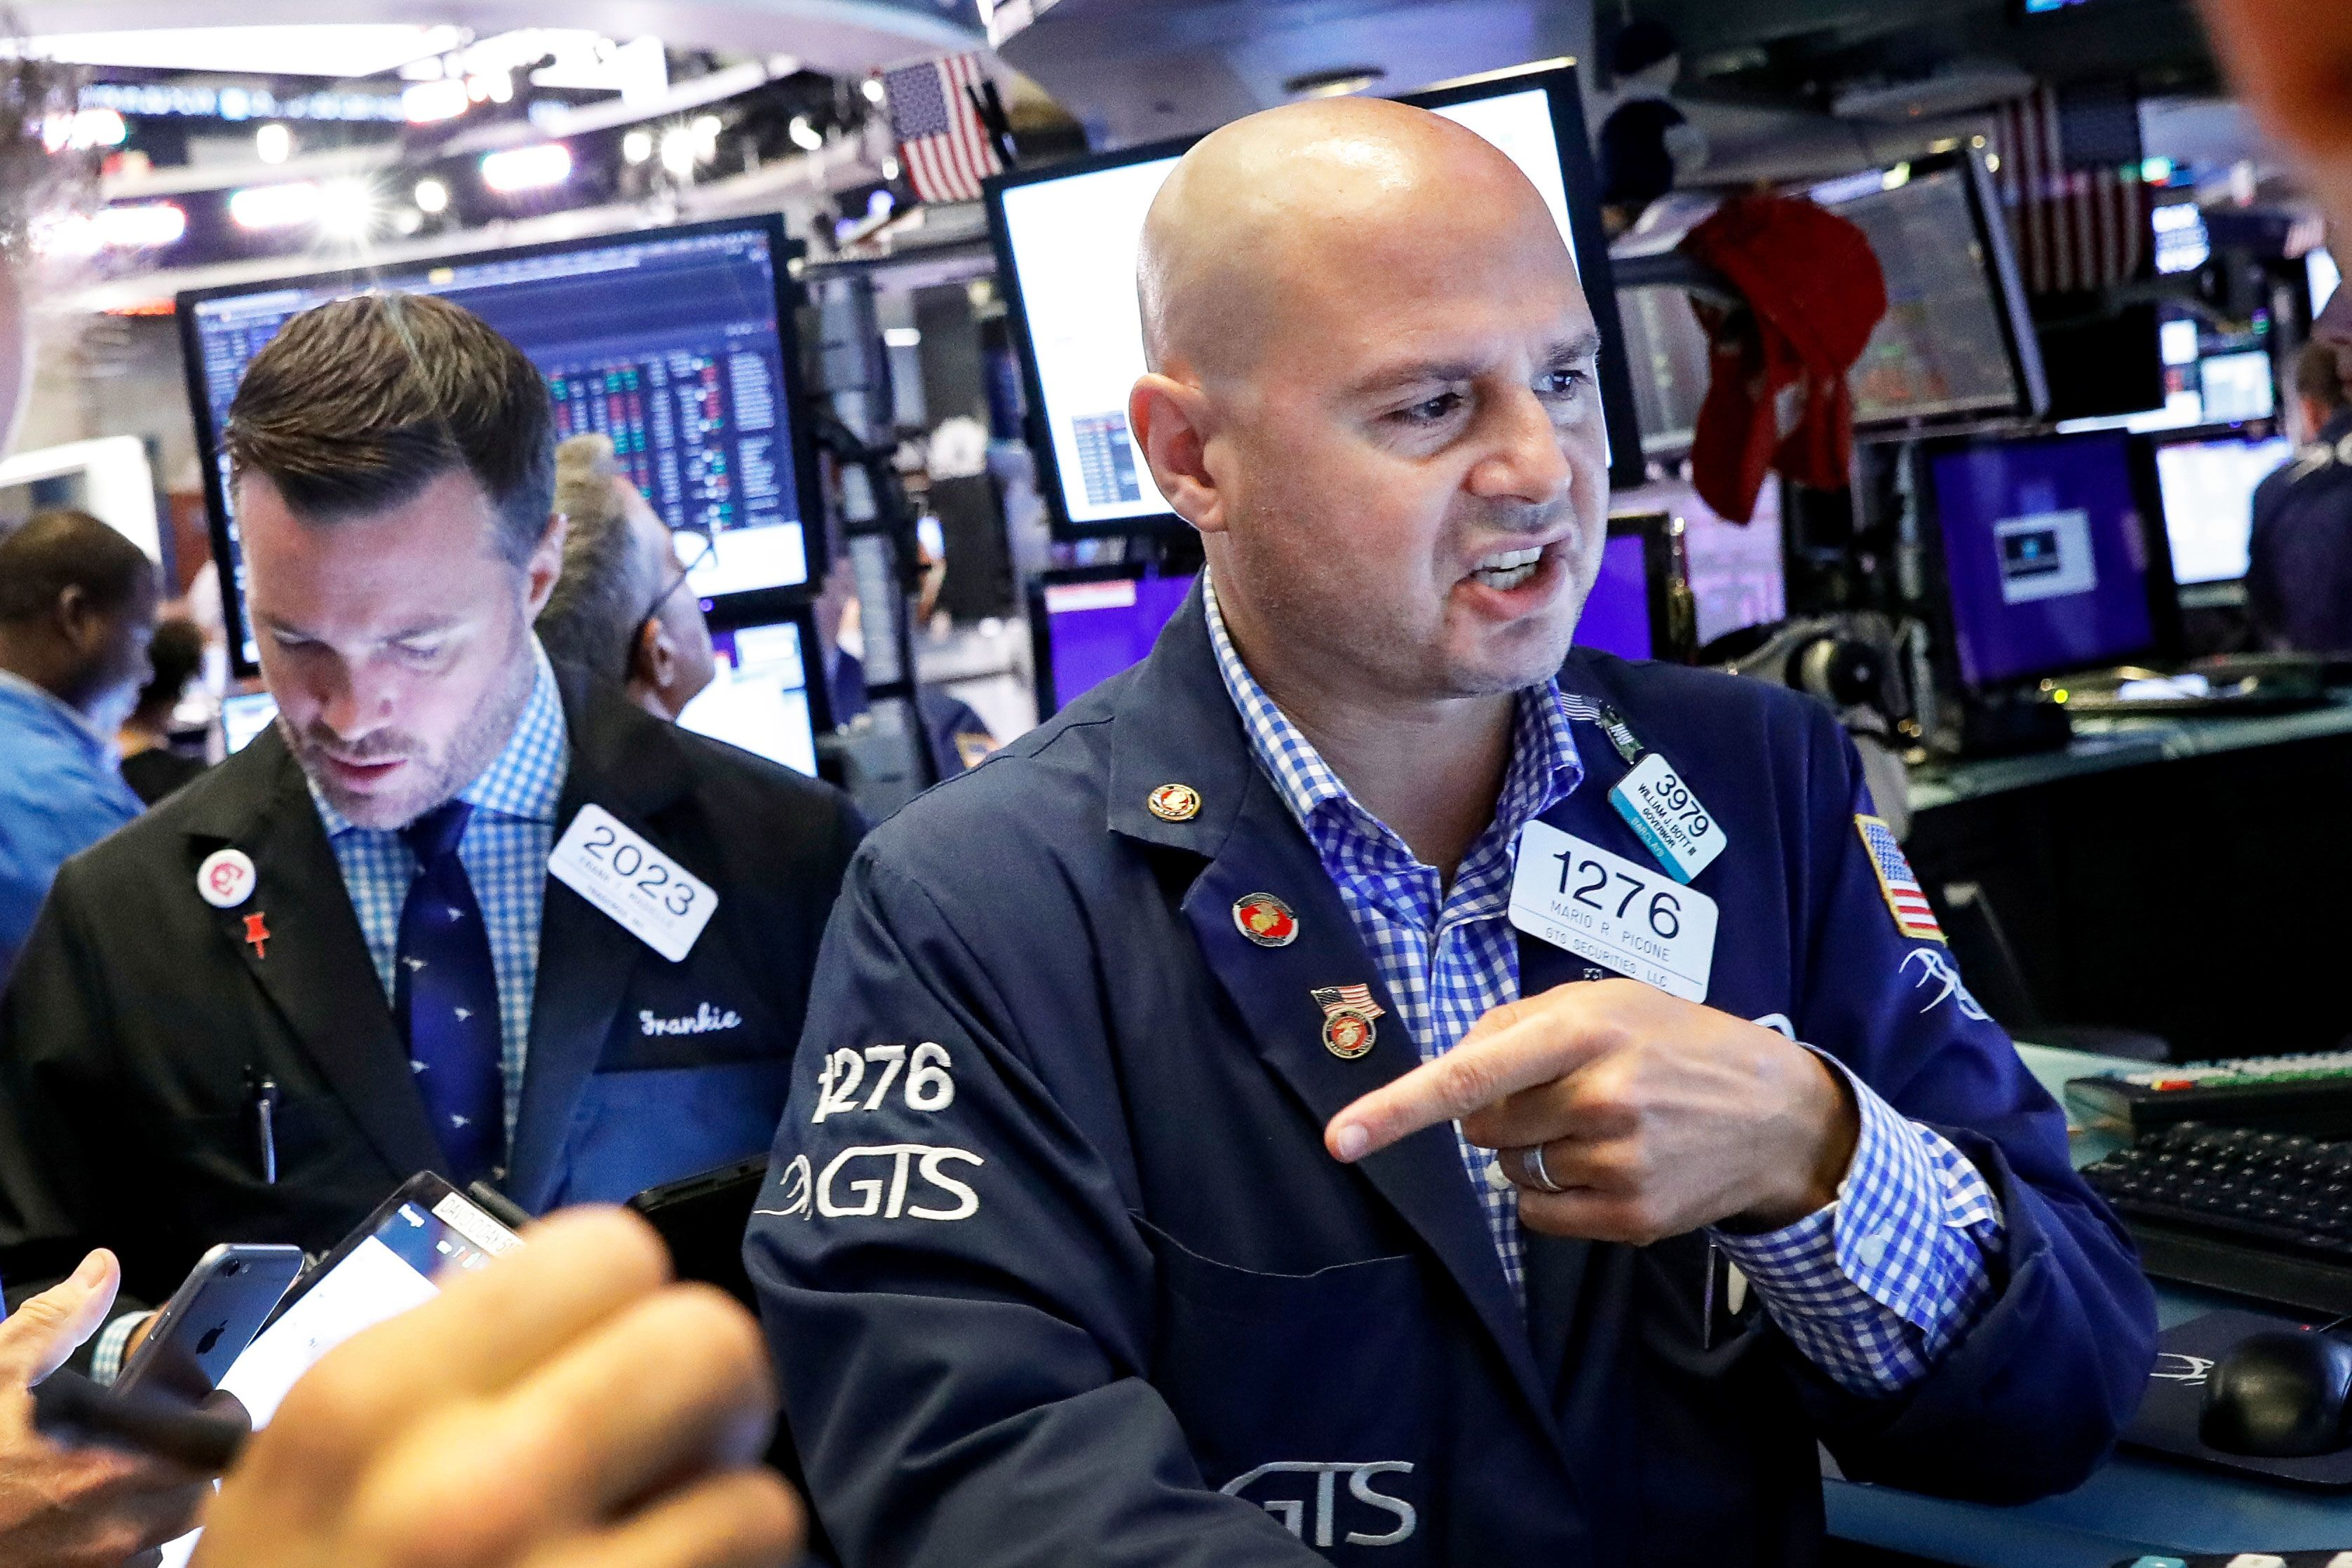 'Don't short a dull market' adage comes into play as trading slows